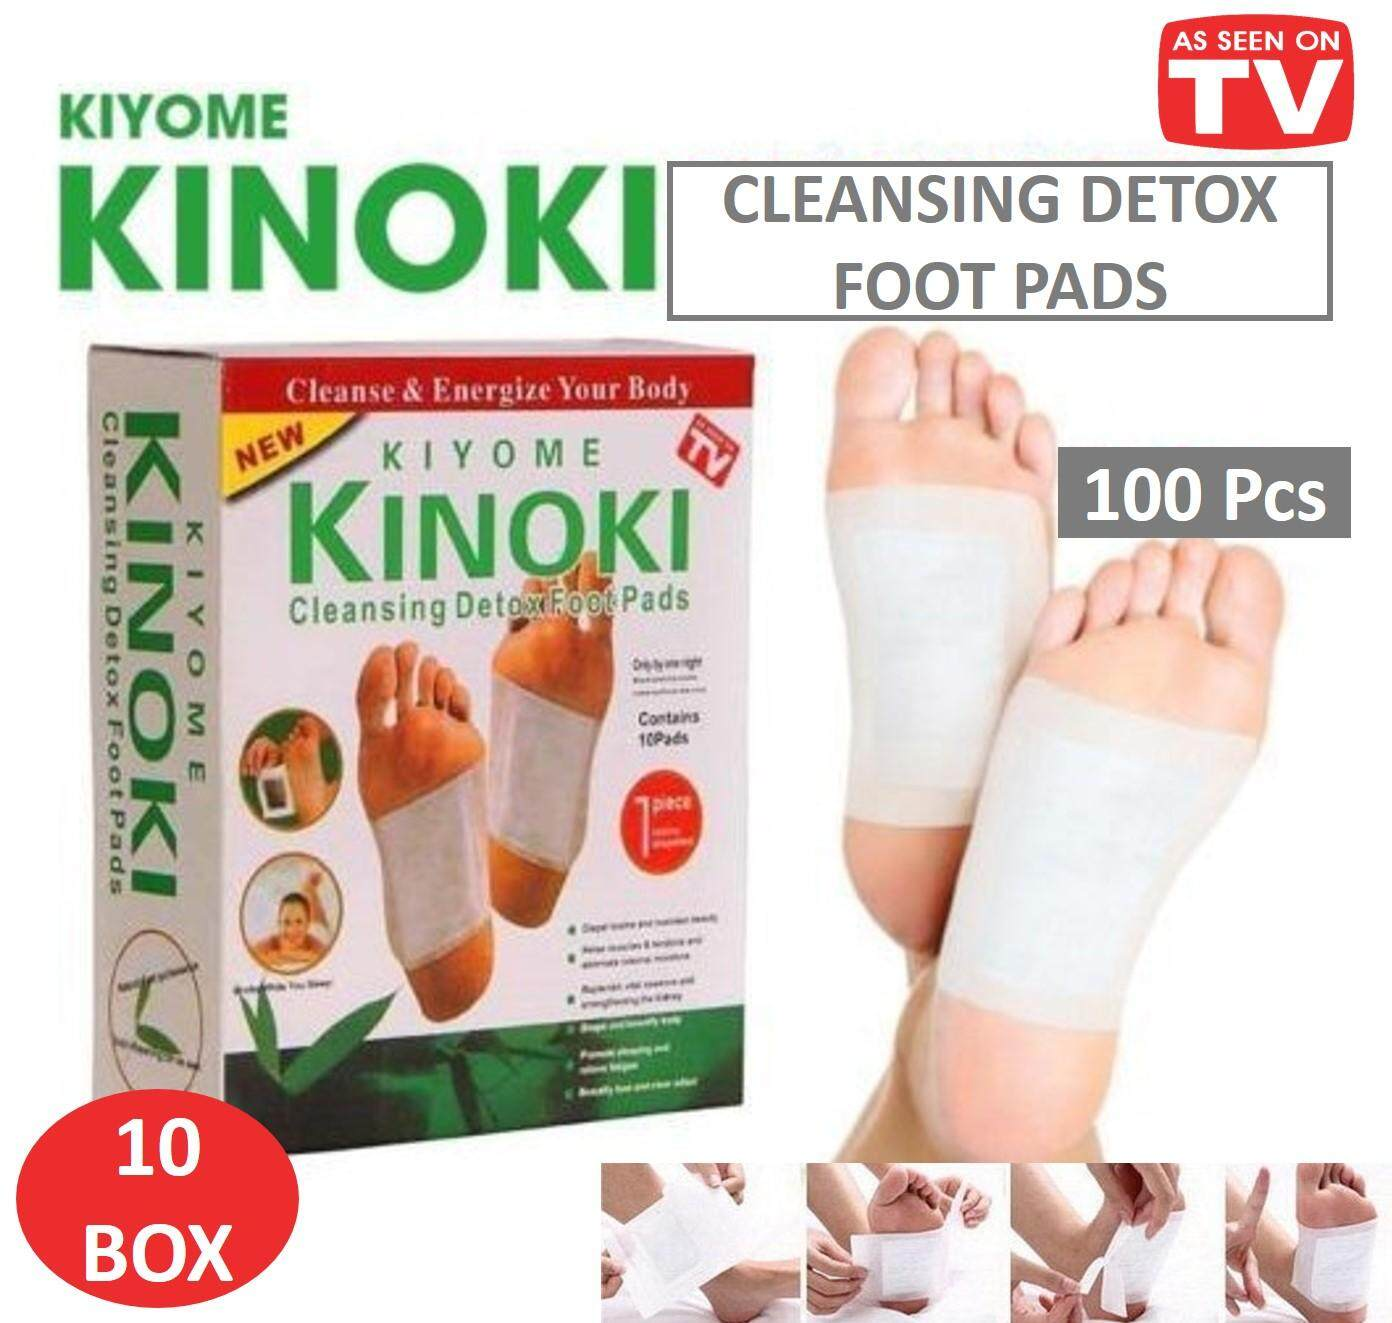 Labelle [10 Box / 100pcs] Kinoki Detox Foot Patches Cleanse And Energize Body By La Belle..